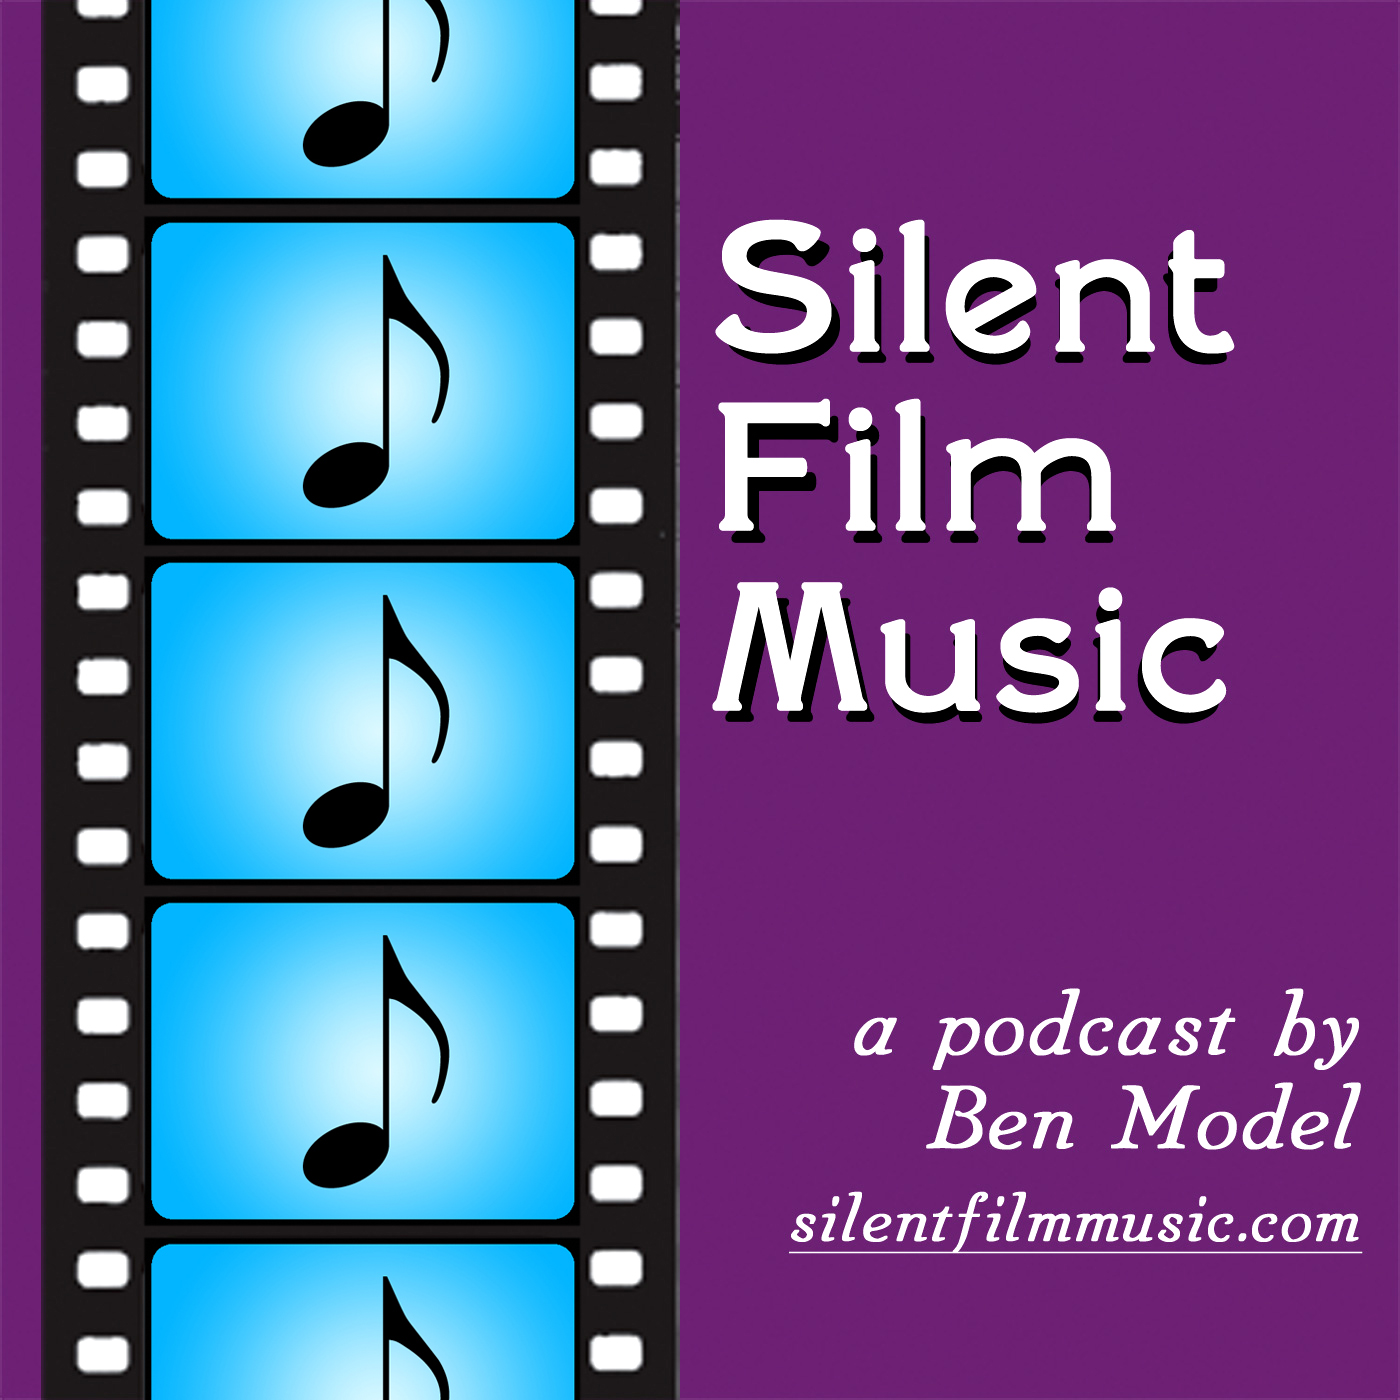 The Silent Film Music Podcast with Ben Model